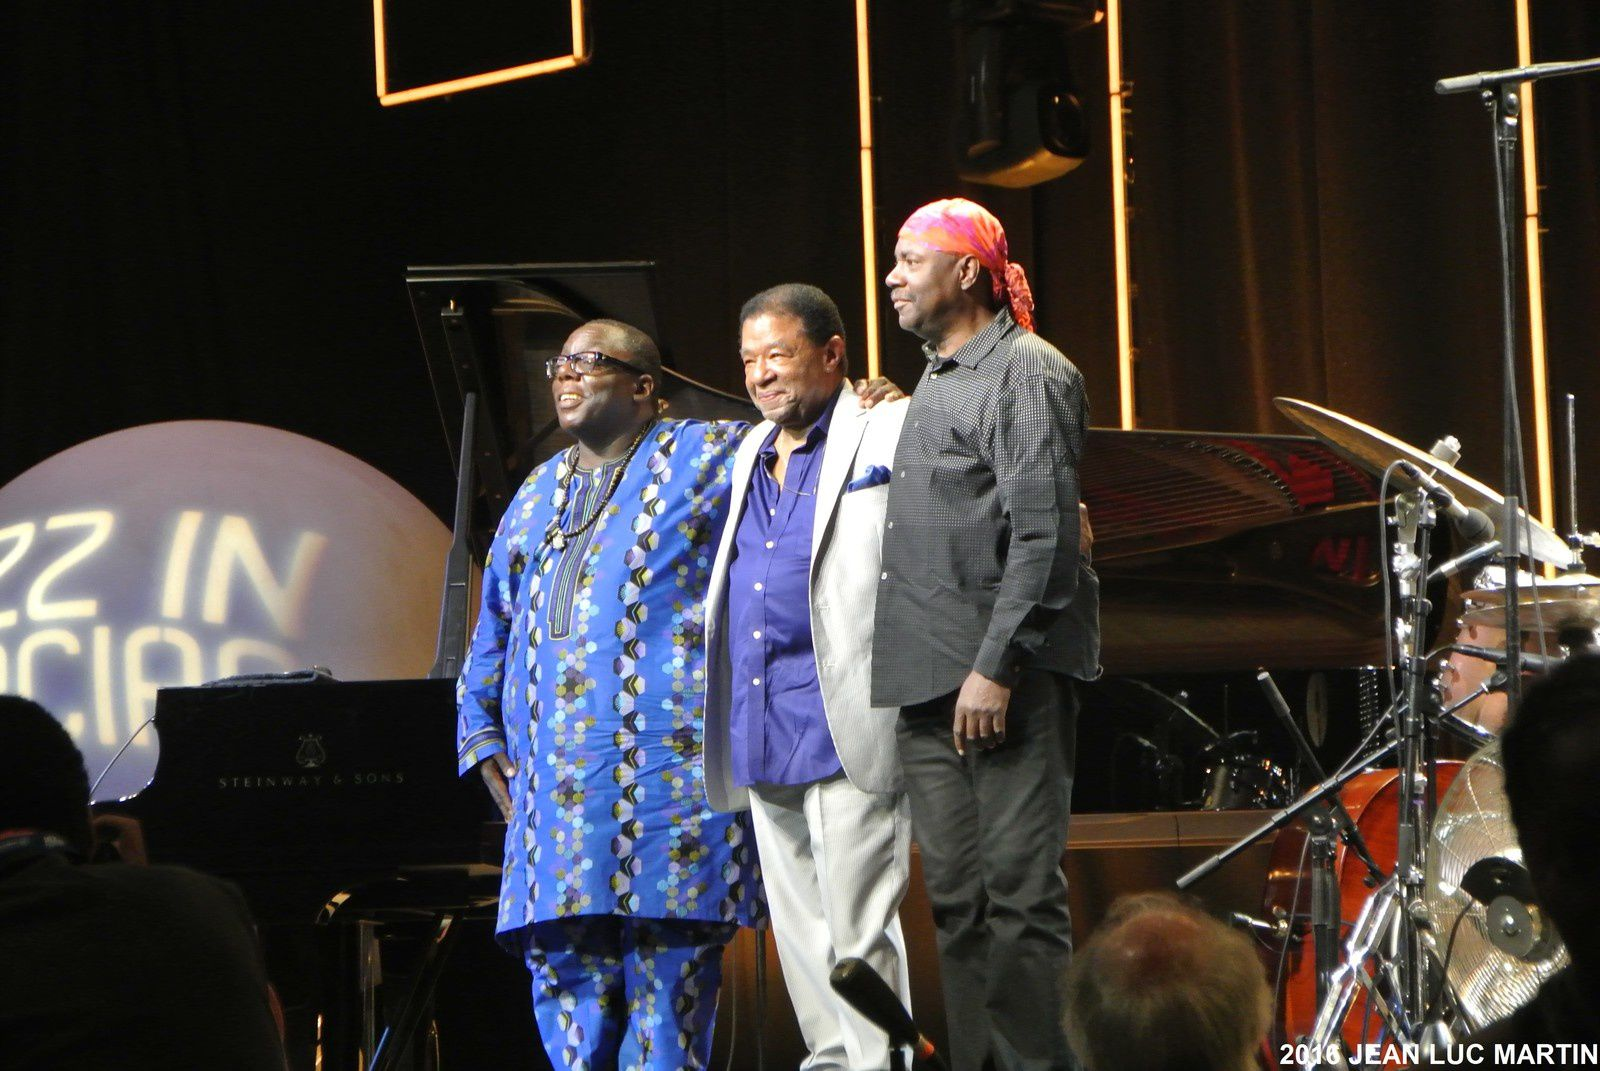 CYRUS CHESTNUT/ BUSTER WILLIAMS/ LENNY WHITE A MARCIAC LE 7/08/2016